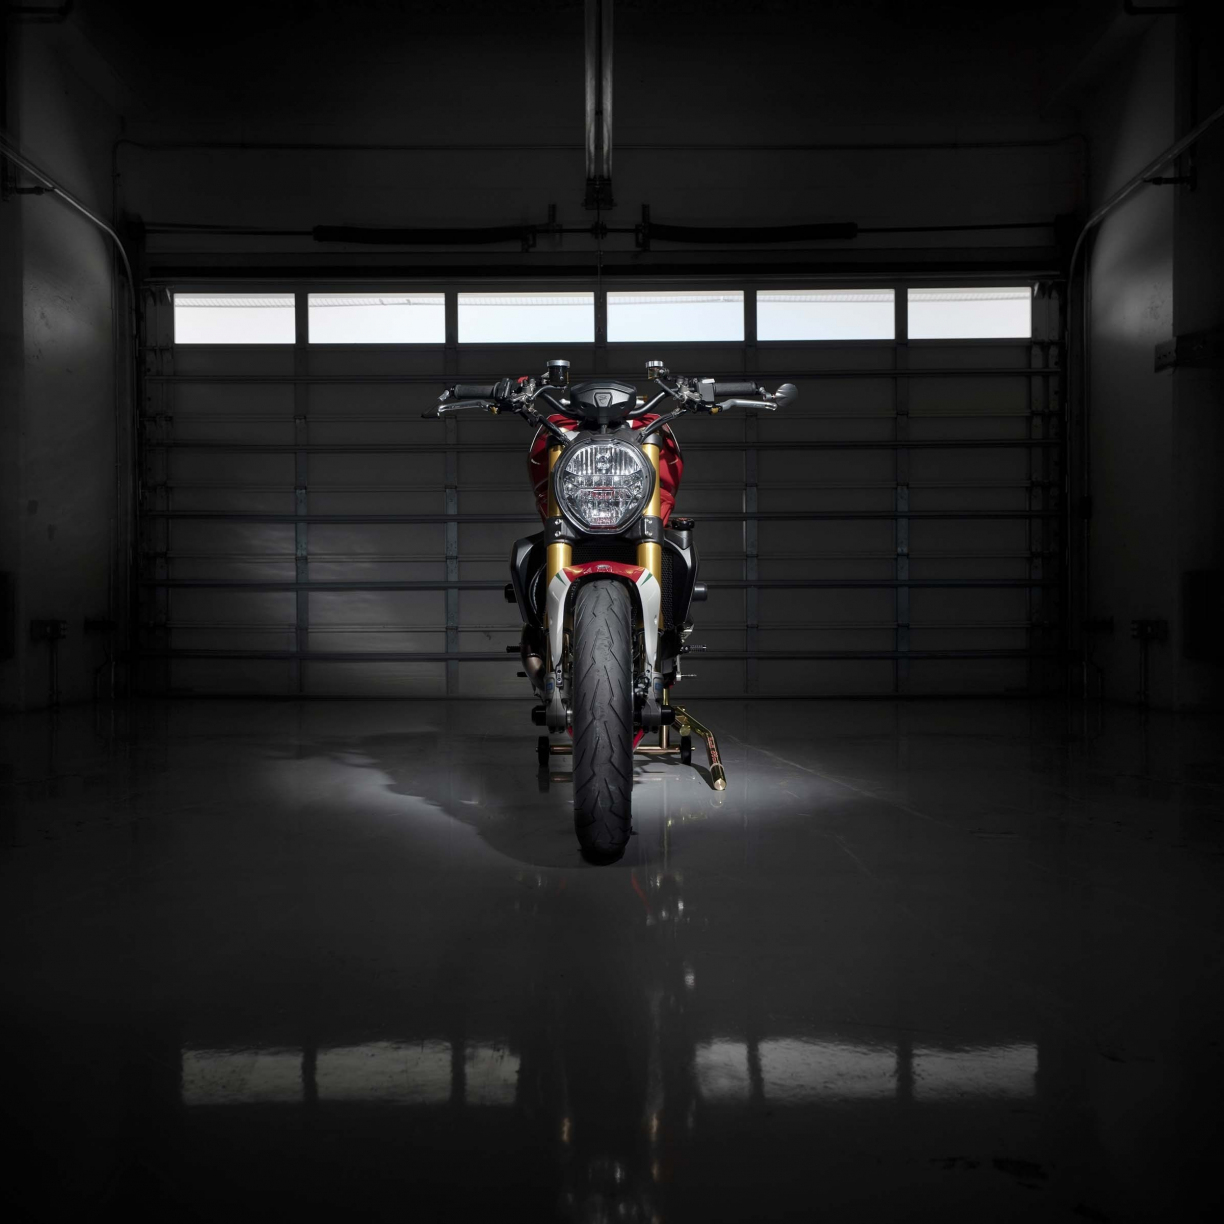 ducati monster 1200 tricolore 2019 4k